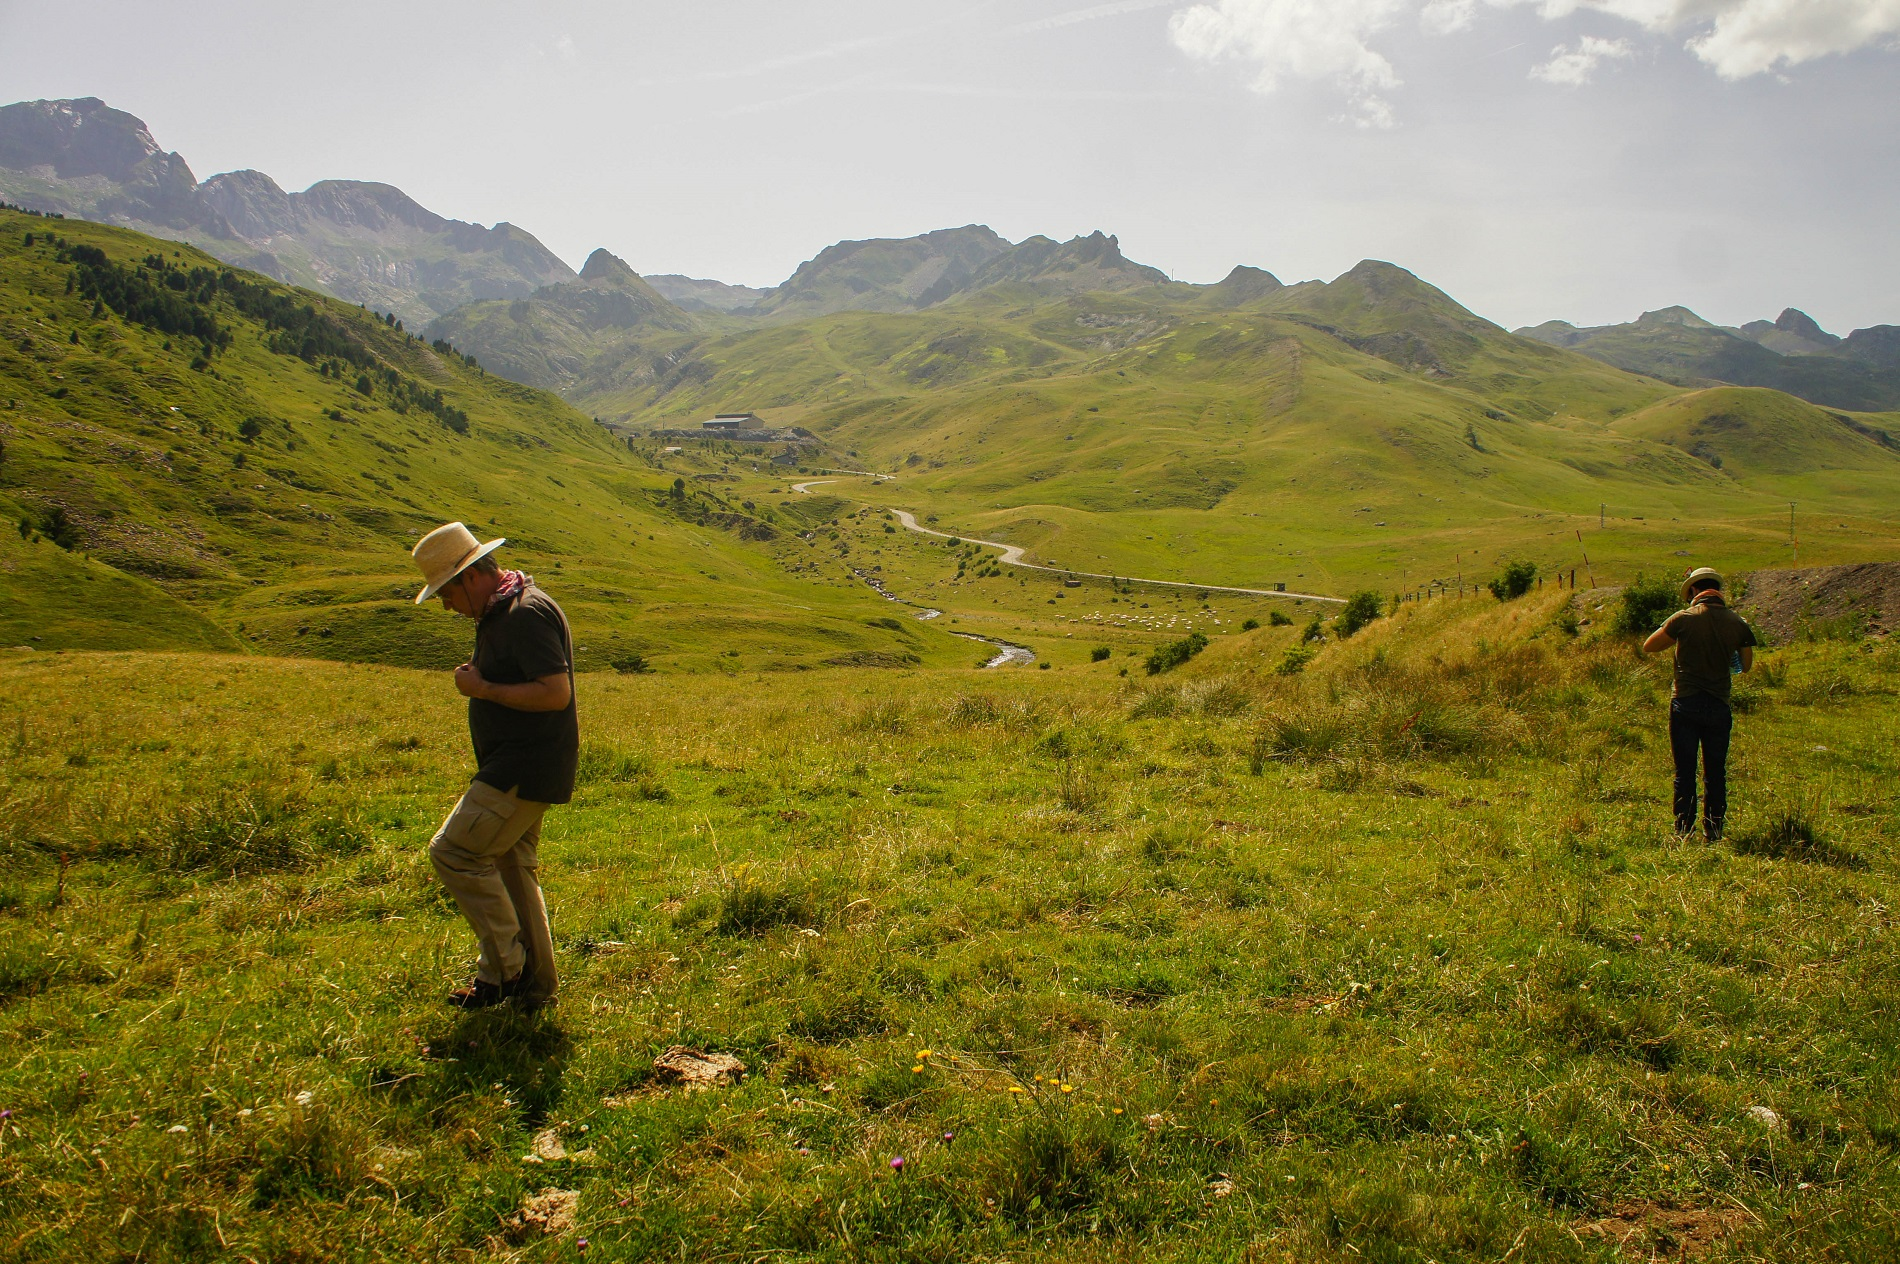 Hunting grasshoppers in the Pyrenees